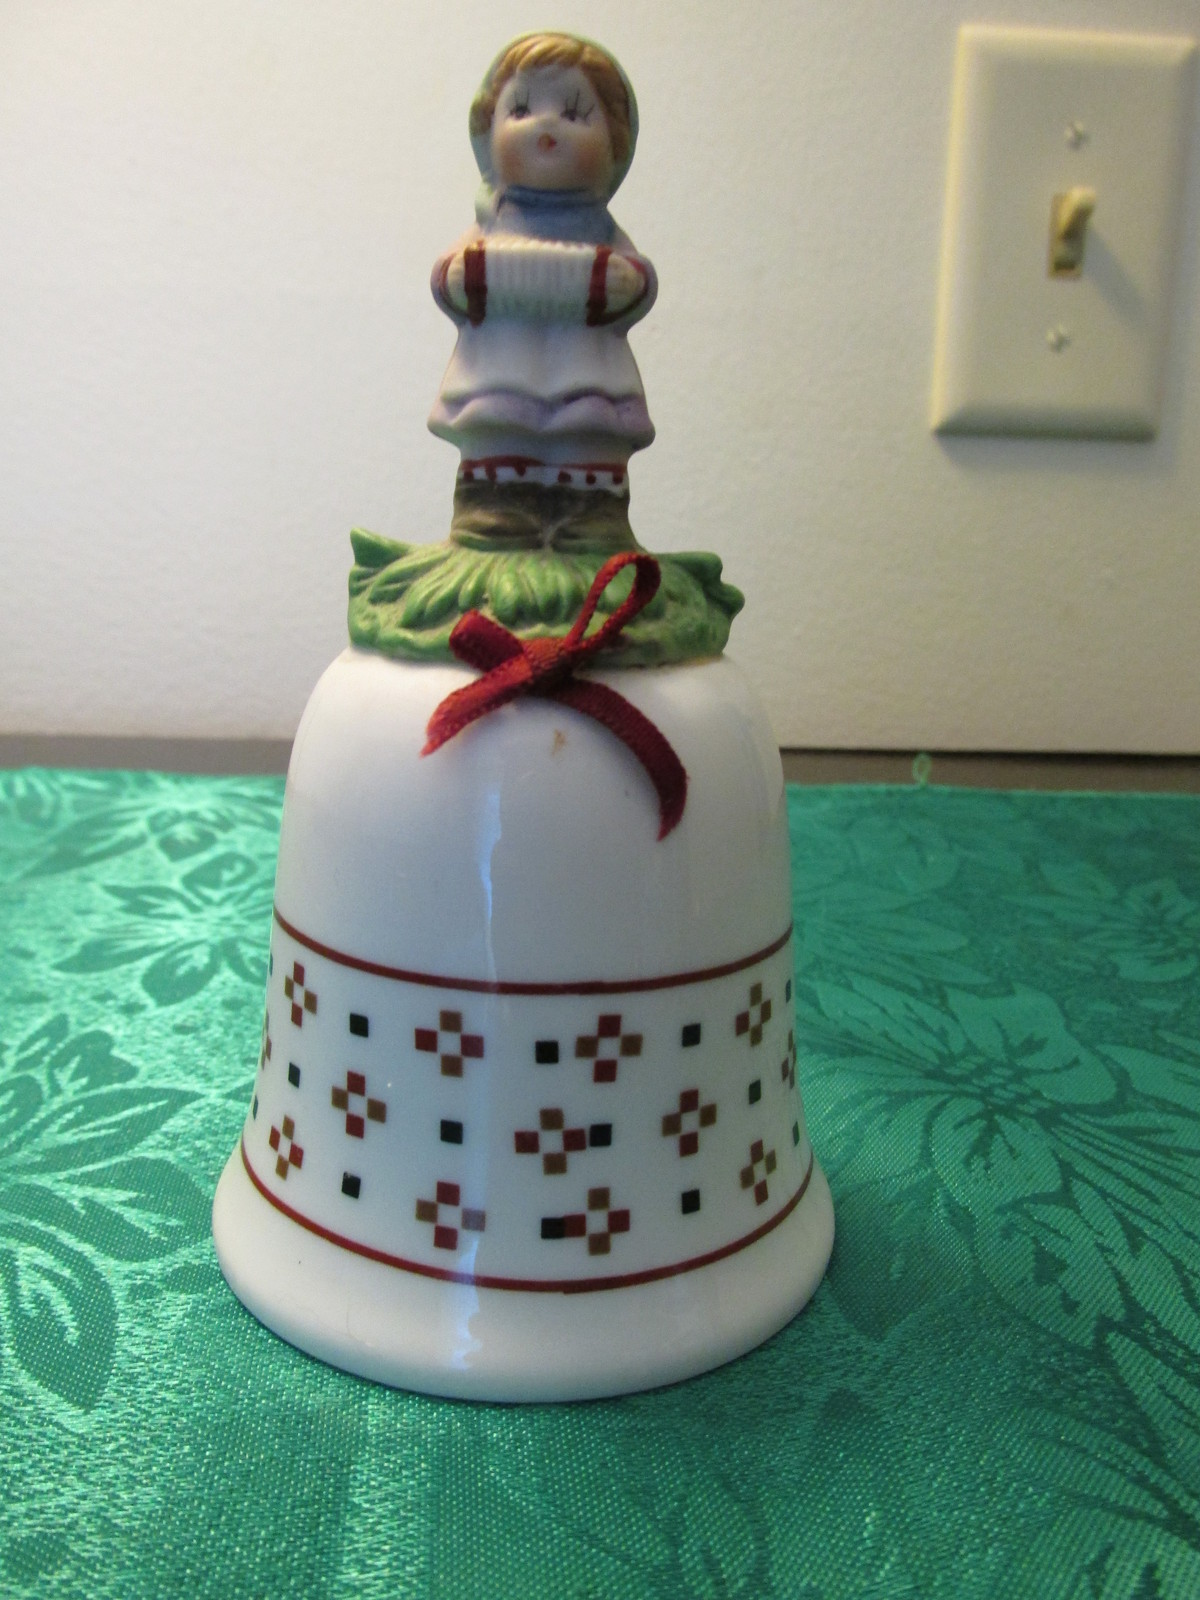 J.S.N.Y. Taiwan Collector's Bell With Girl